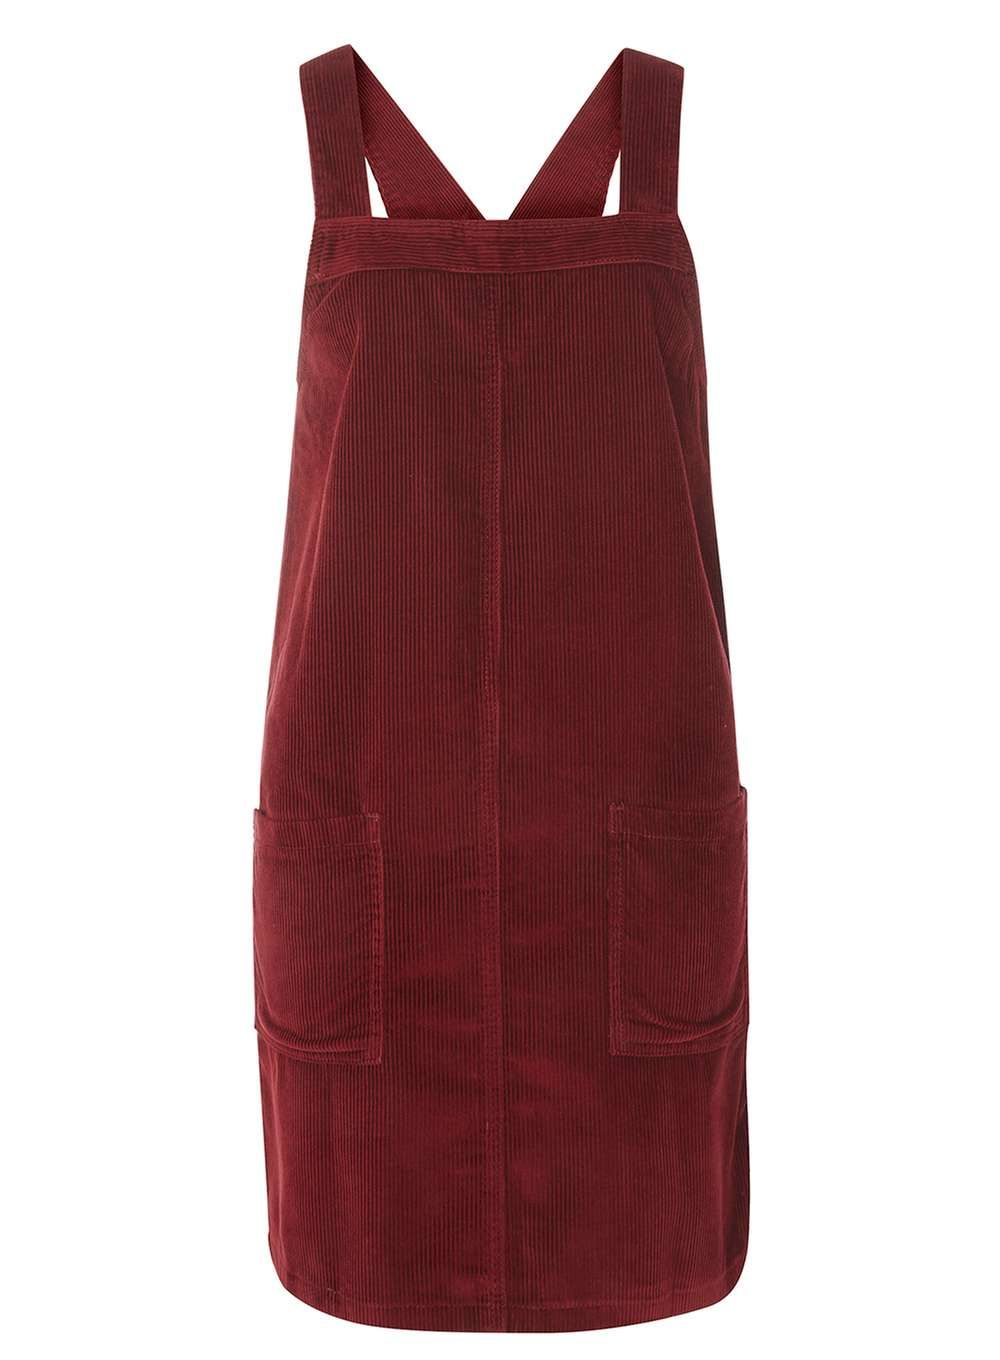 genuine yet not vulgar hot-selling authentic Tall Burgundy Cord Pinafore dress - up to a UK 22 - £26 ...